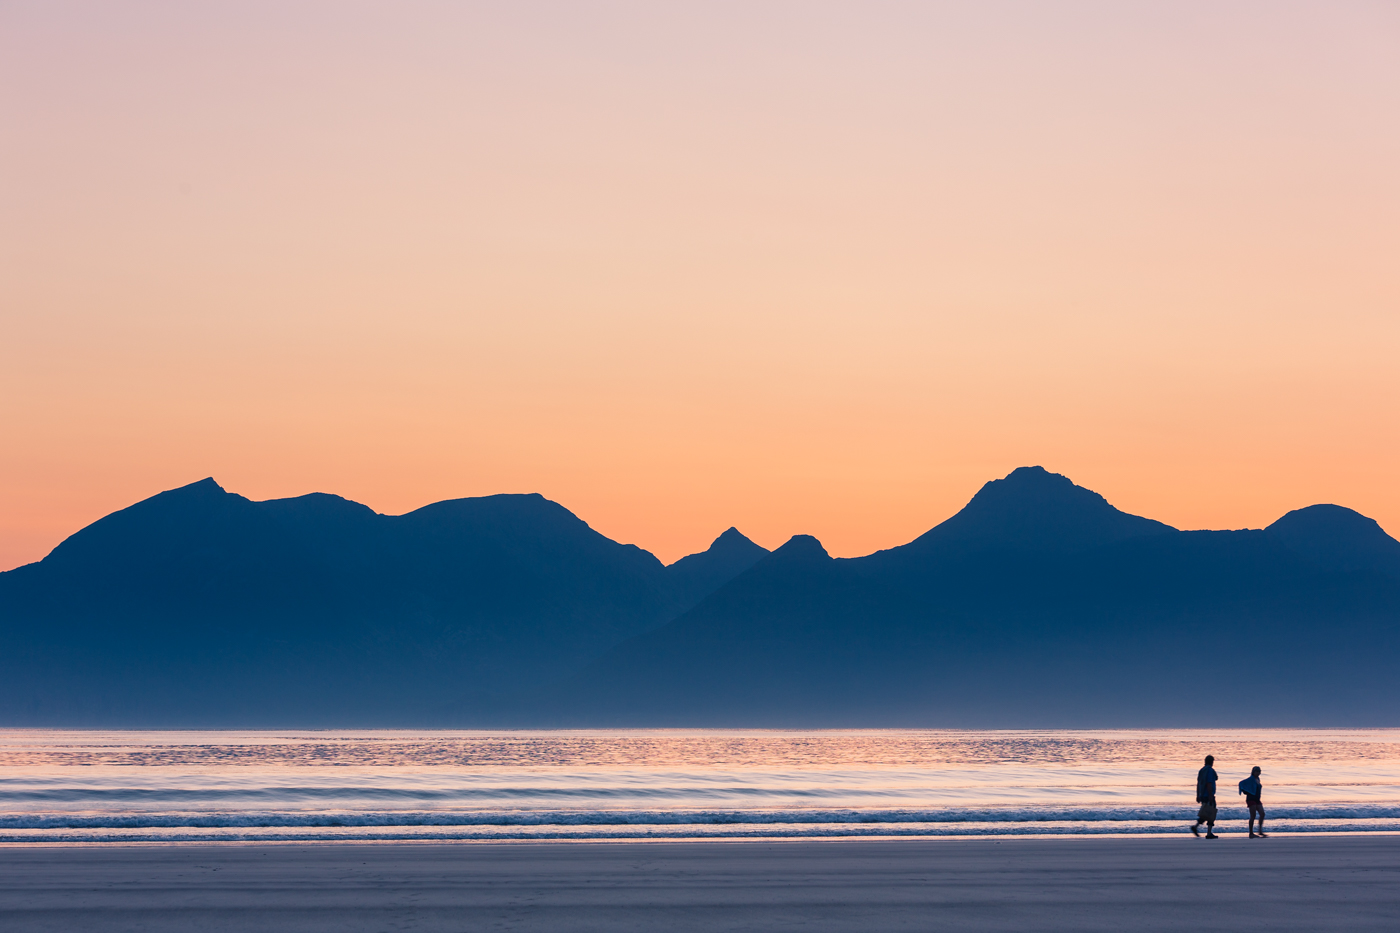 EIgg walkers mjgholland photography